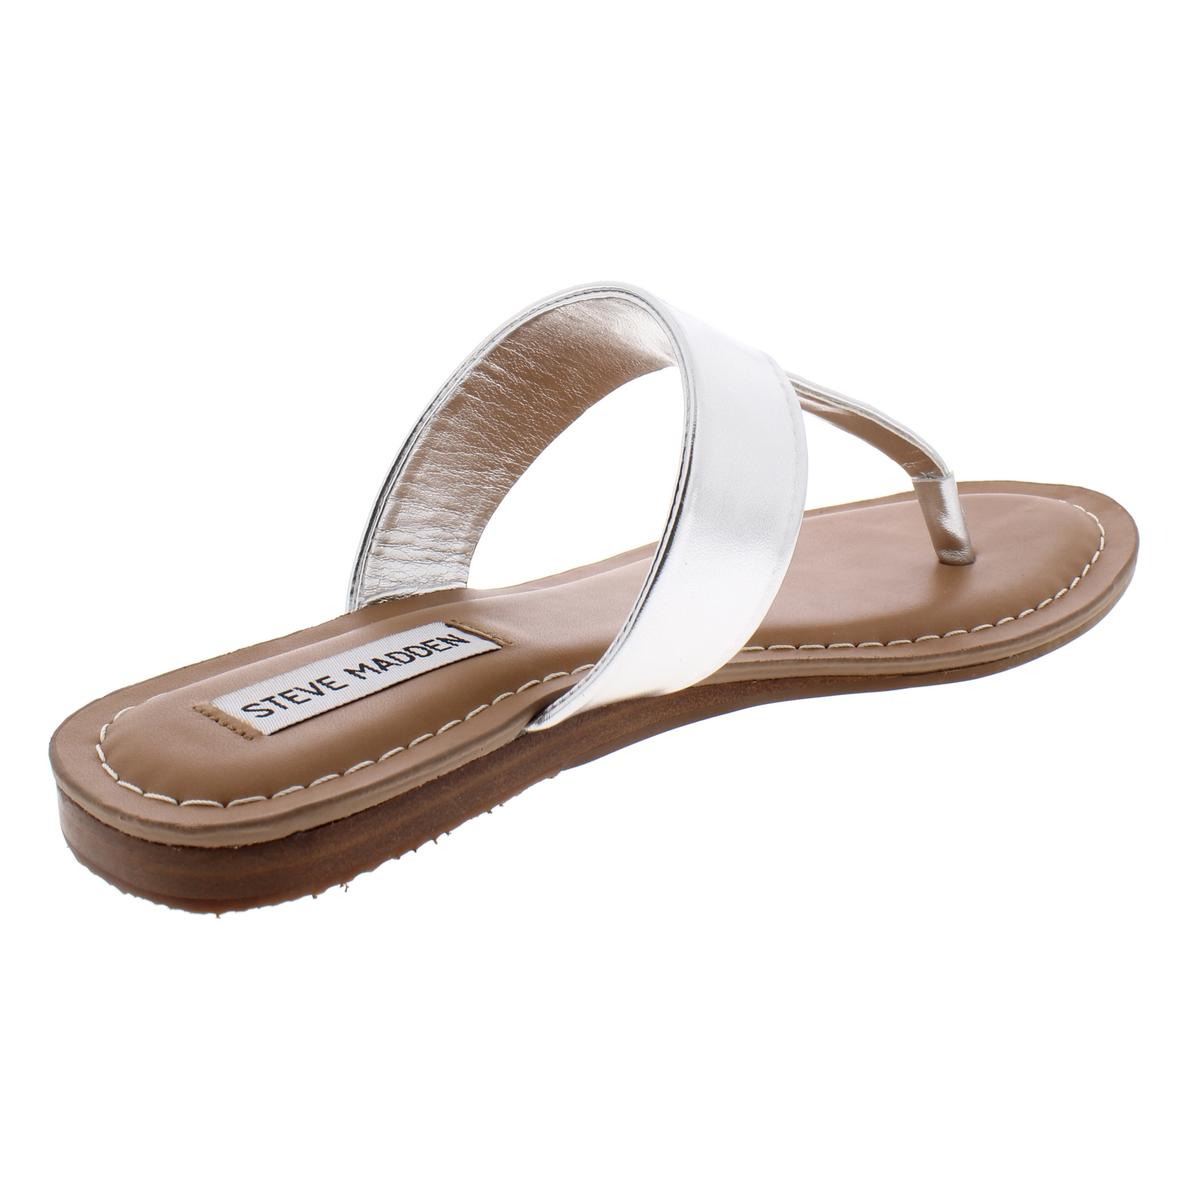 Steve-Madden-Womens-Vacay-Faux-Leather-Thong-Sandals-Flats-Shoes-BHFO-0099 thumbnail 8